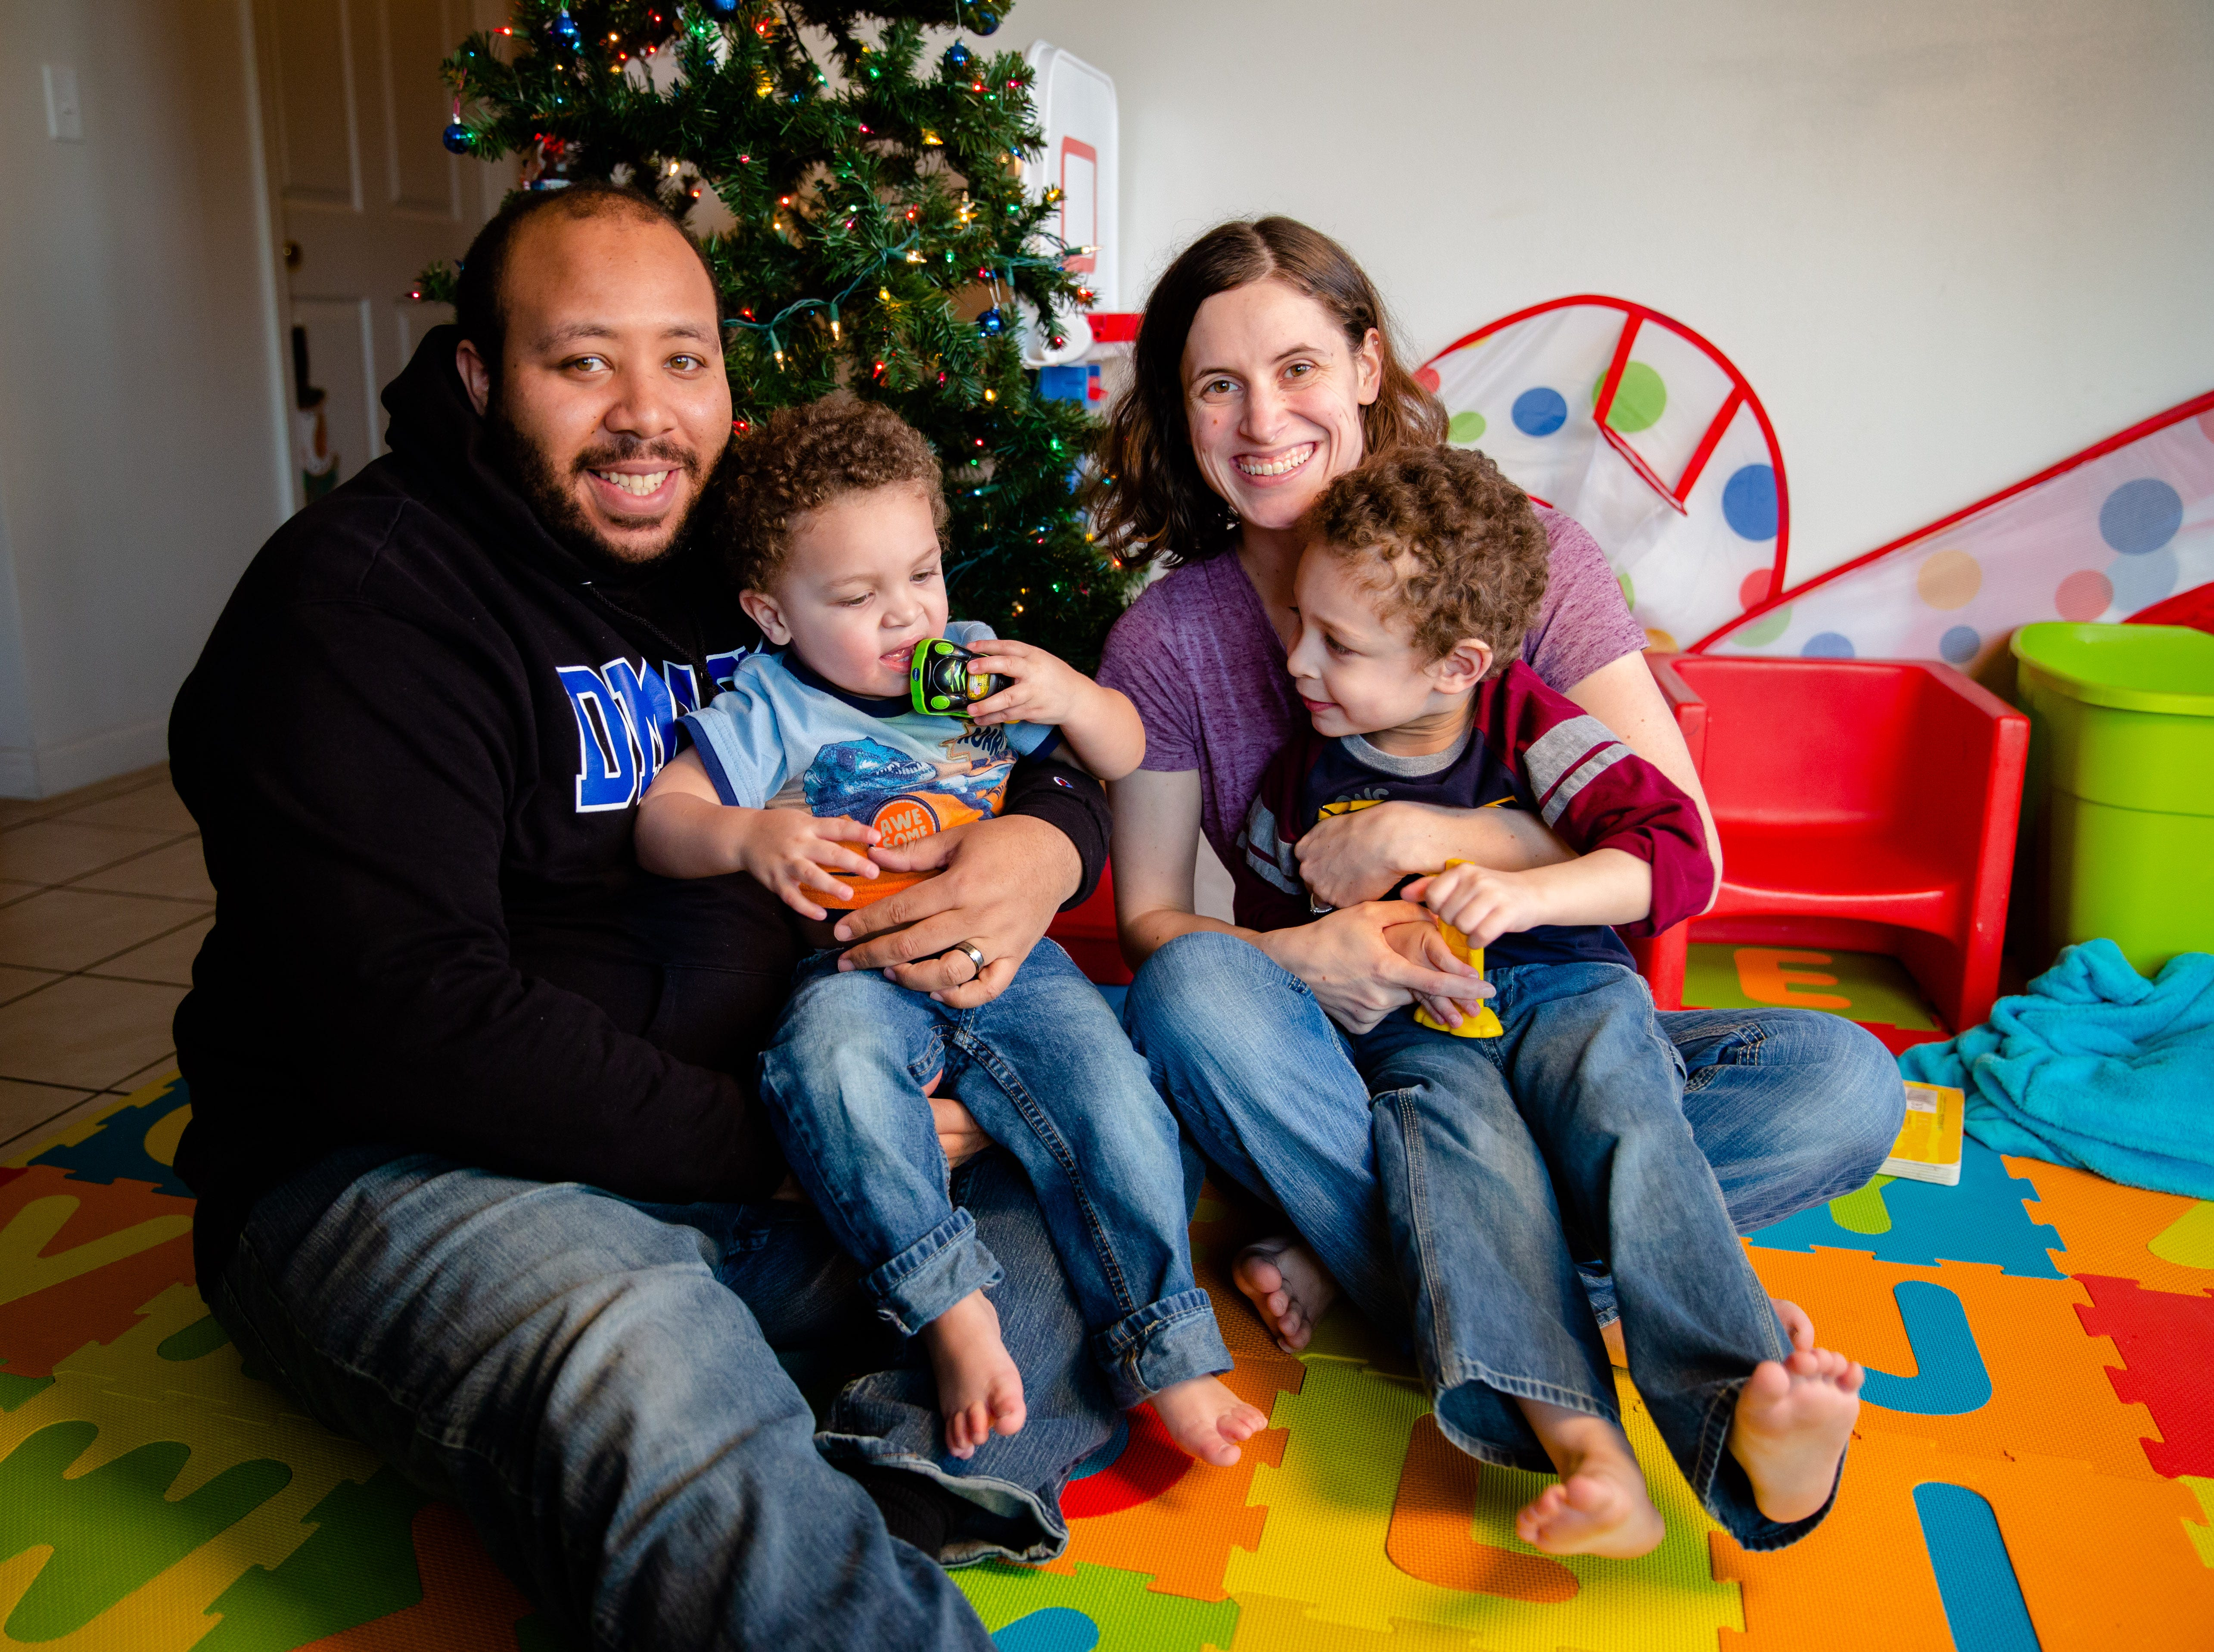 Maurice McFalls holds his son Oliver, 2, as his wife Andrea  holds their son Benjamin, 3, at their Des Moines apartment Tuesday, Dec. 11, 2018.